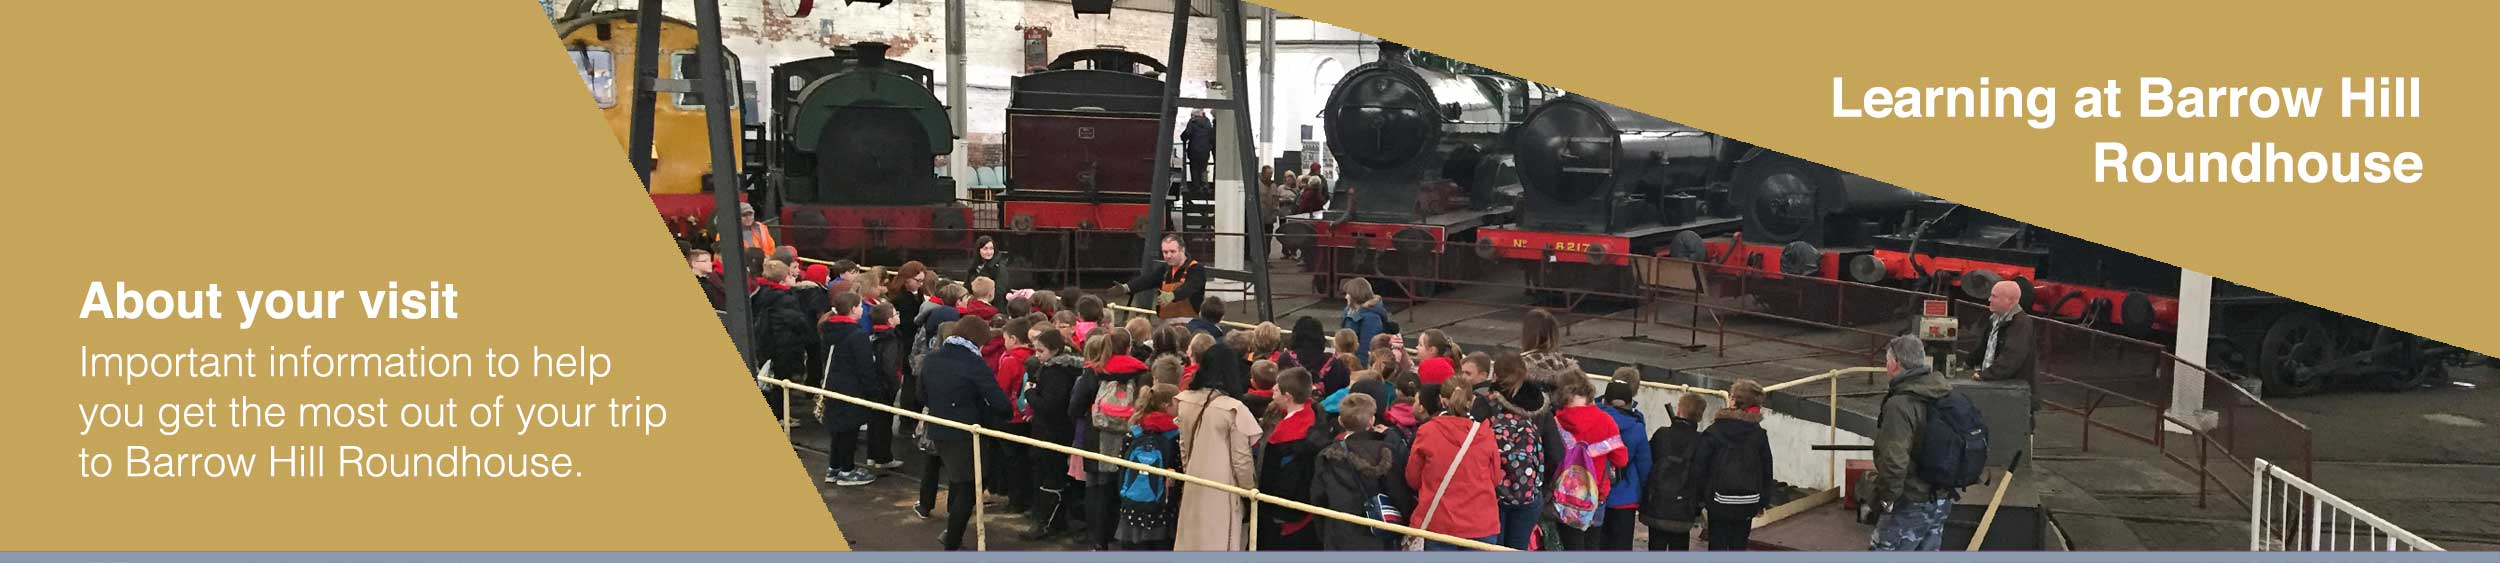 Plan your school visit to Barrow Hill Roundhouse museum in chesterfield, Derbyshire